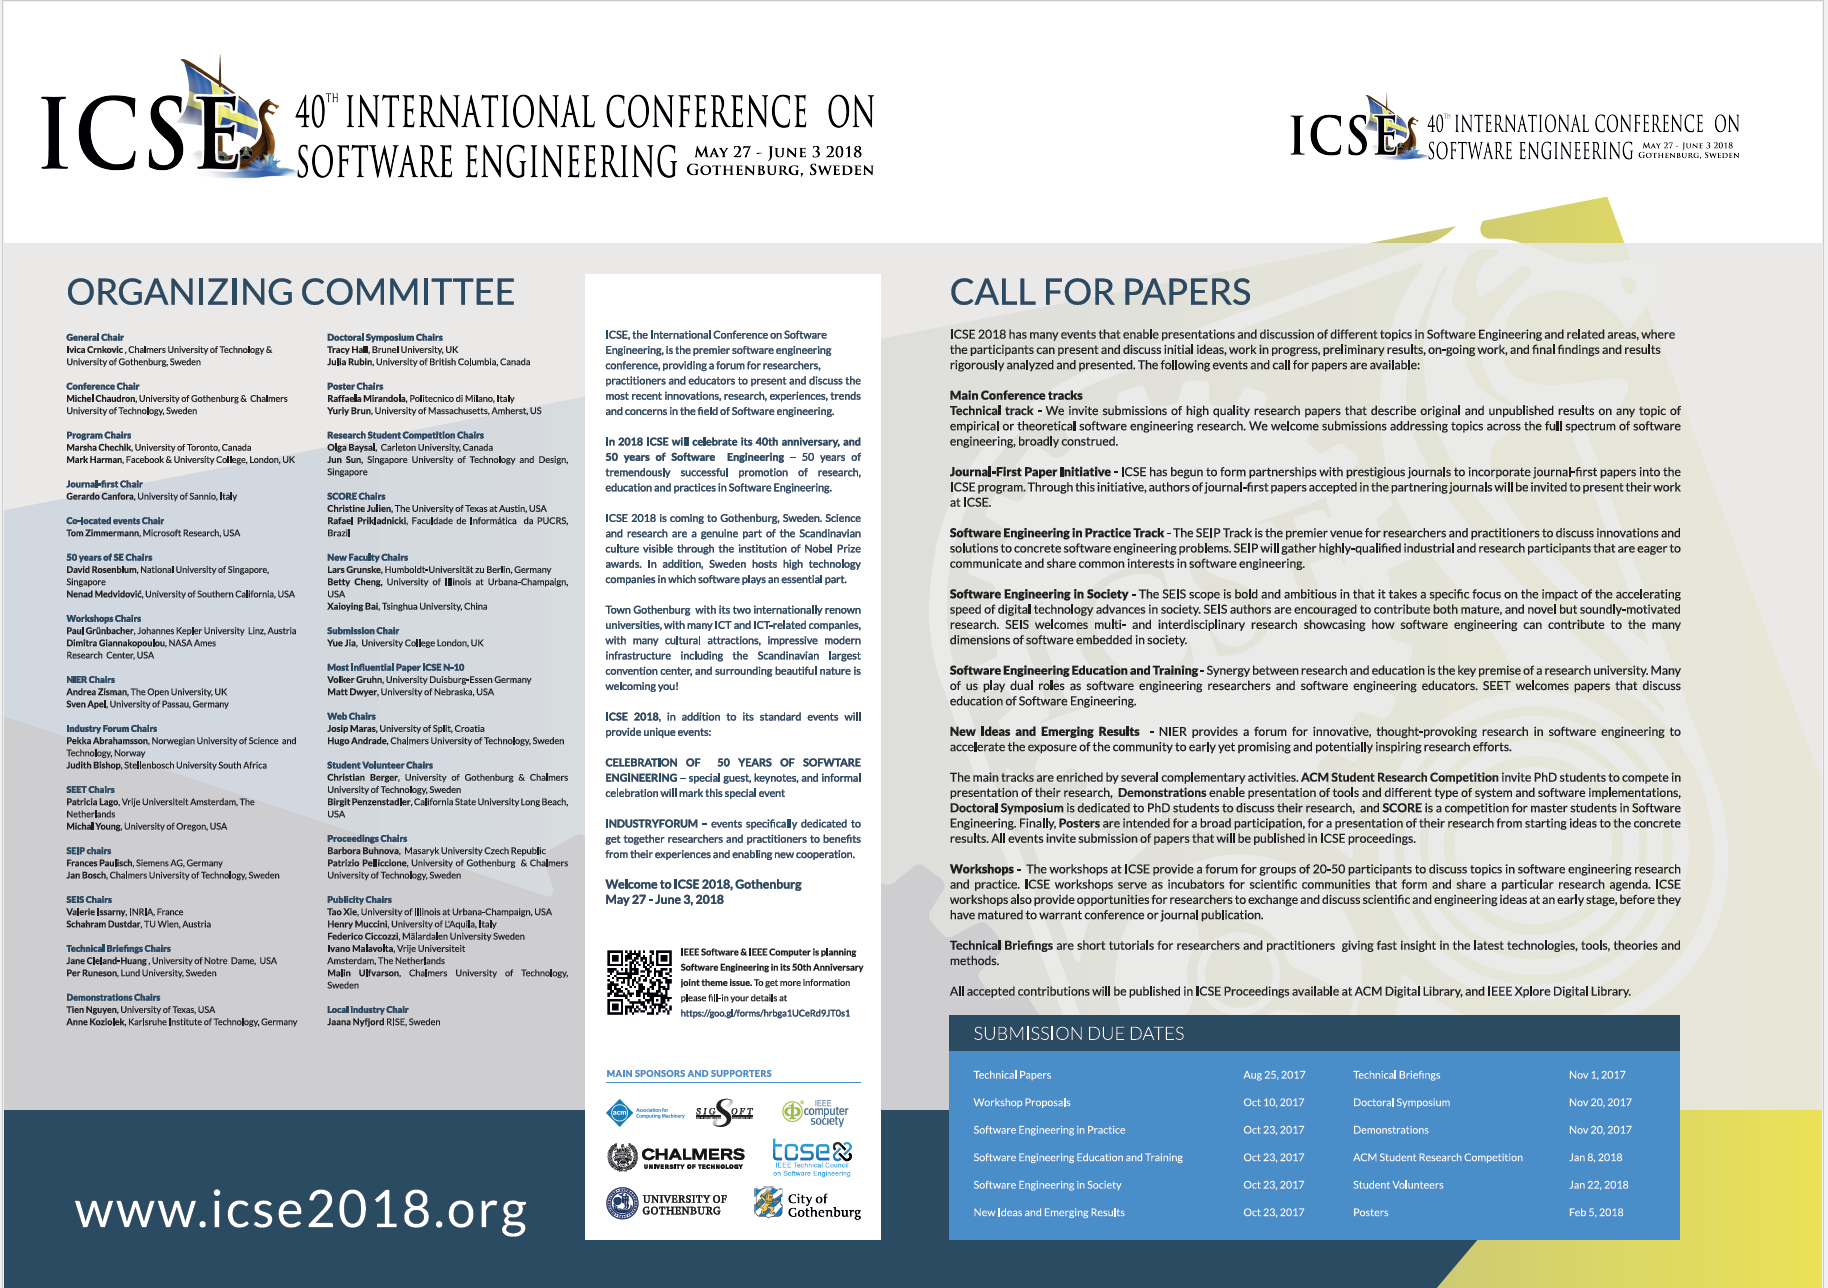 ICSE 2018 Flyer - 2 pages letter format